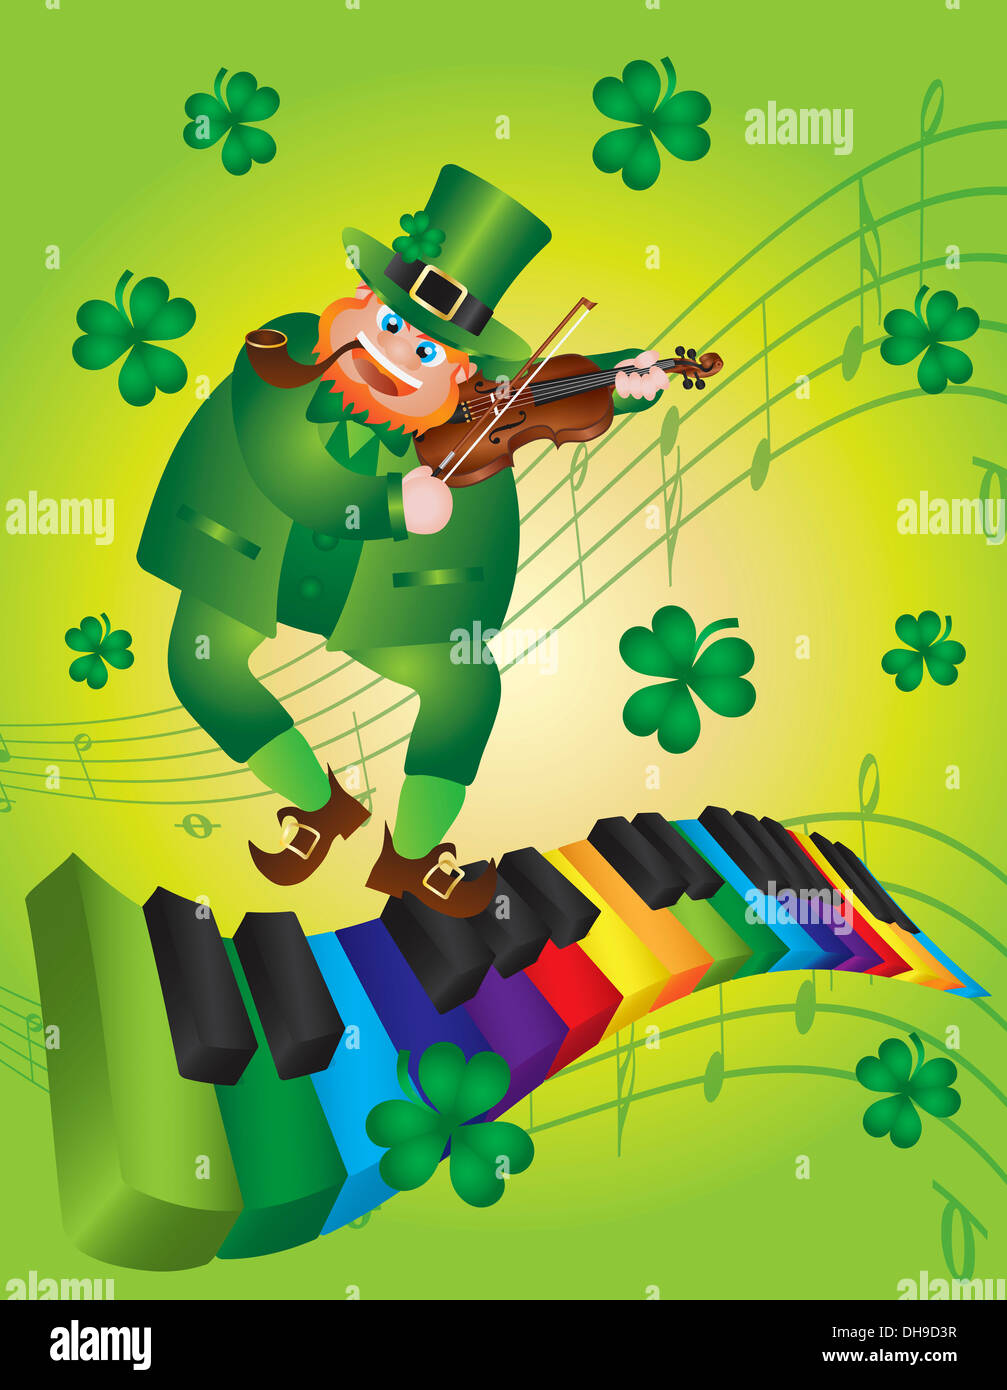 St Patricks Day Leprechaun Playing Violin Dancing On Rainbow Colors Piano Wavy Keyboard Shamrock Background Illustration